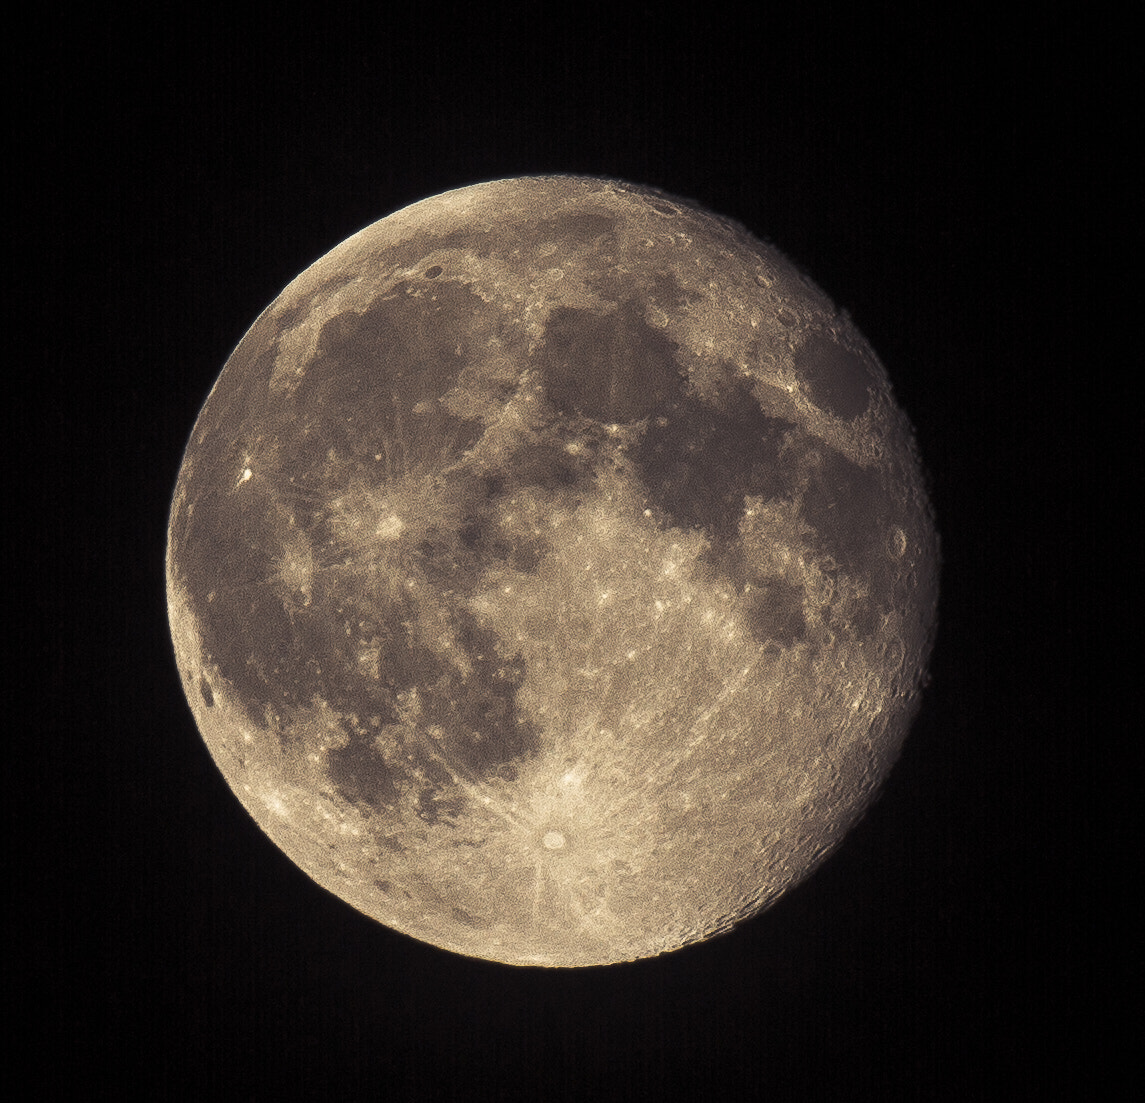 Photograph the moon by Michael Dockhorn on 500px